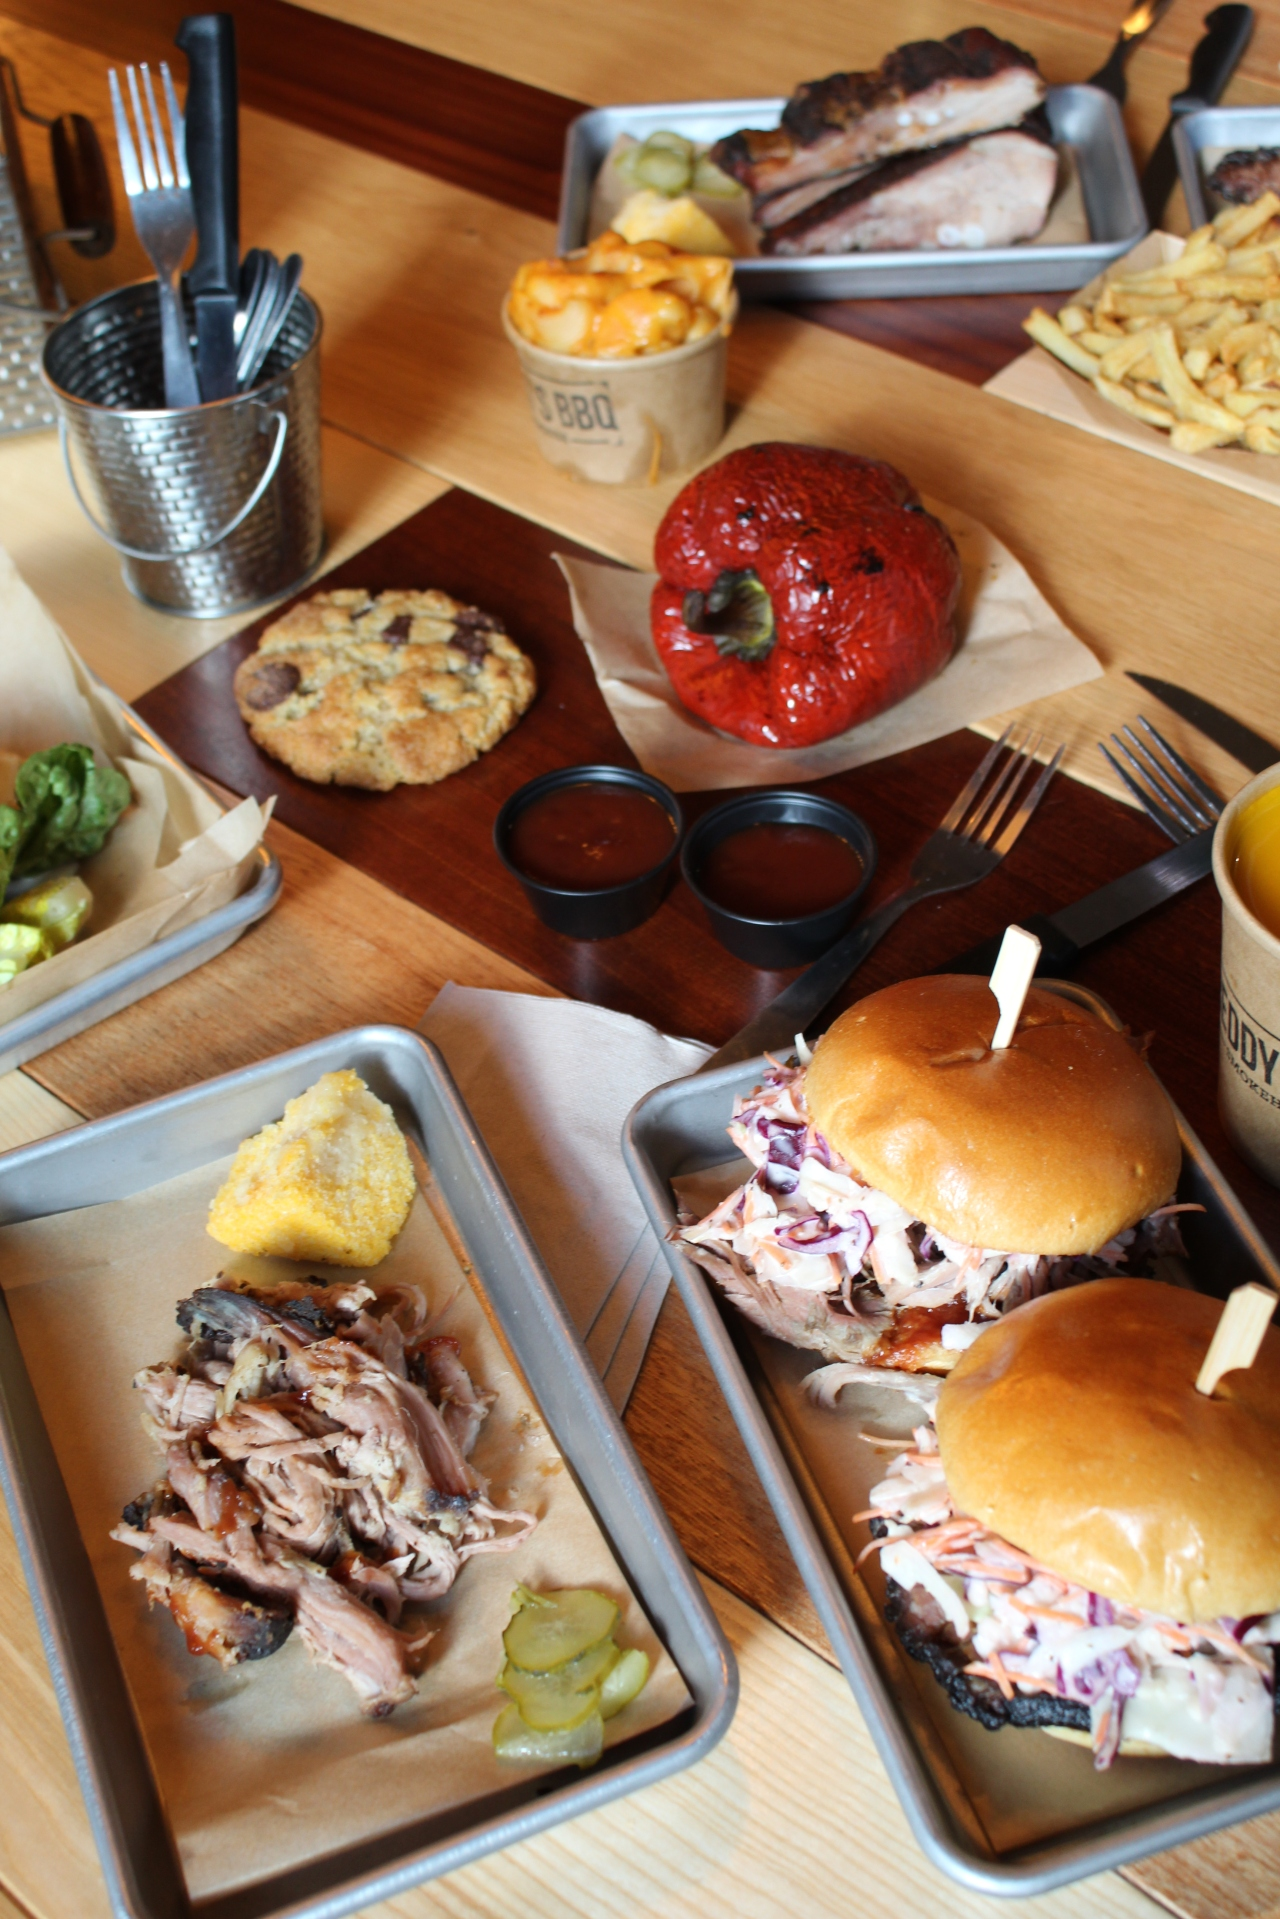 FREDDY'S BBQ : LA SMOKEHOUSE PARISIENNE COMME AU TEXAS – PARIS 2